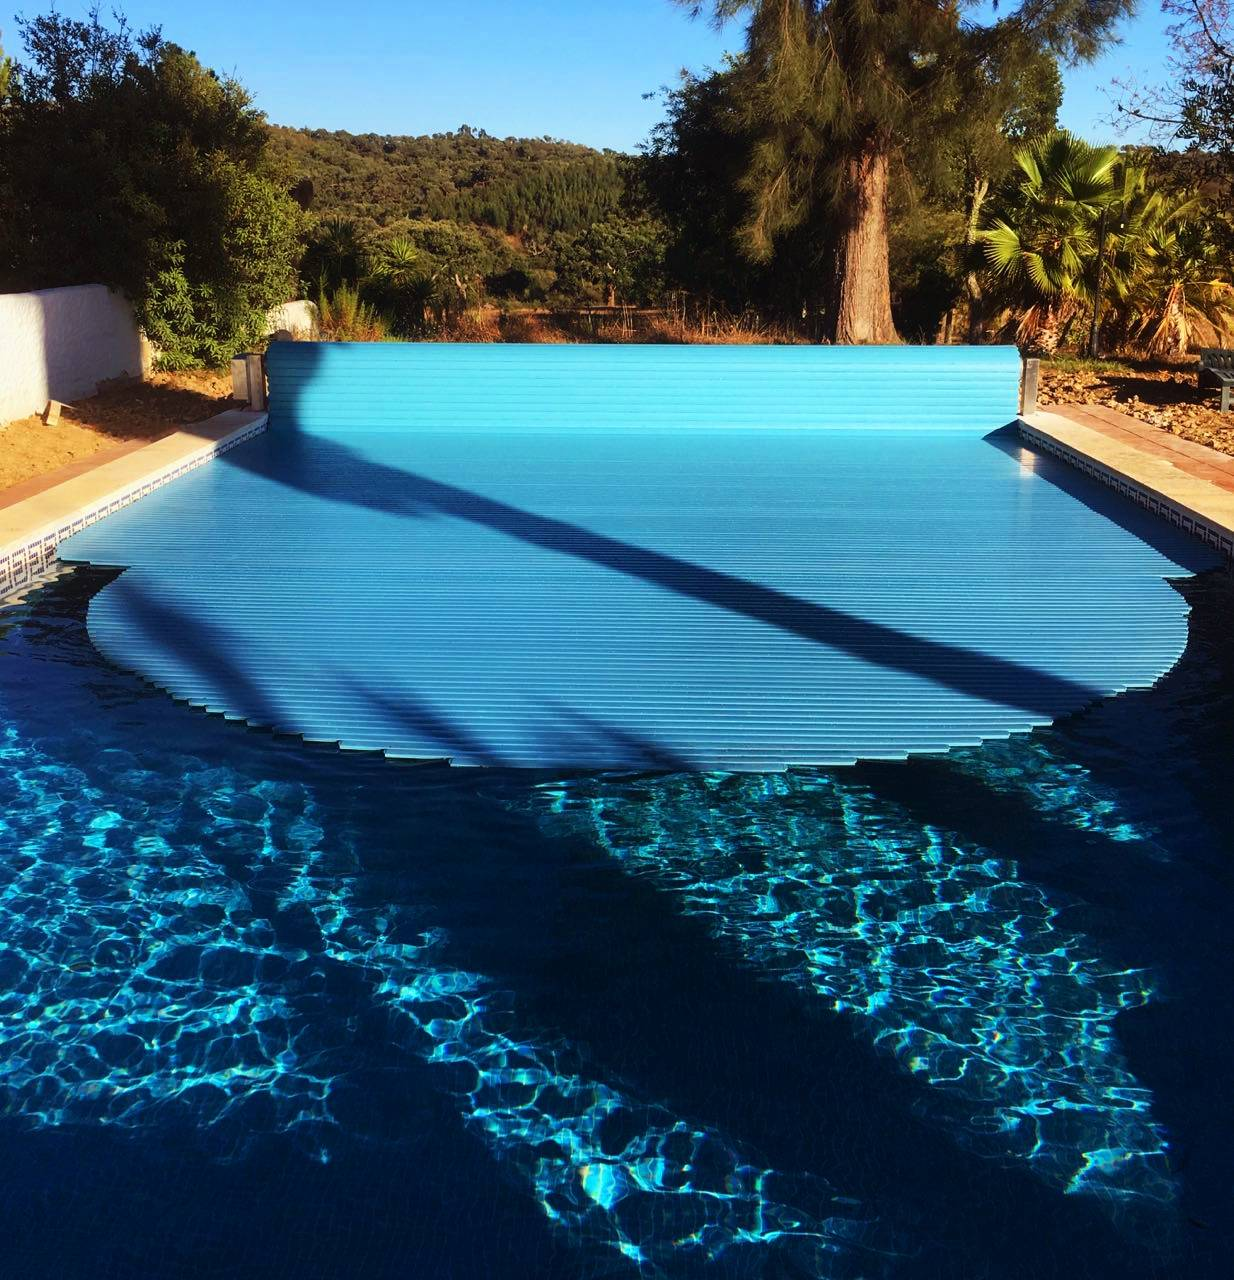 Opening pool cover